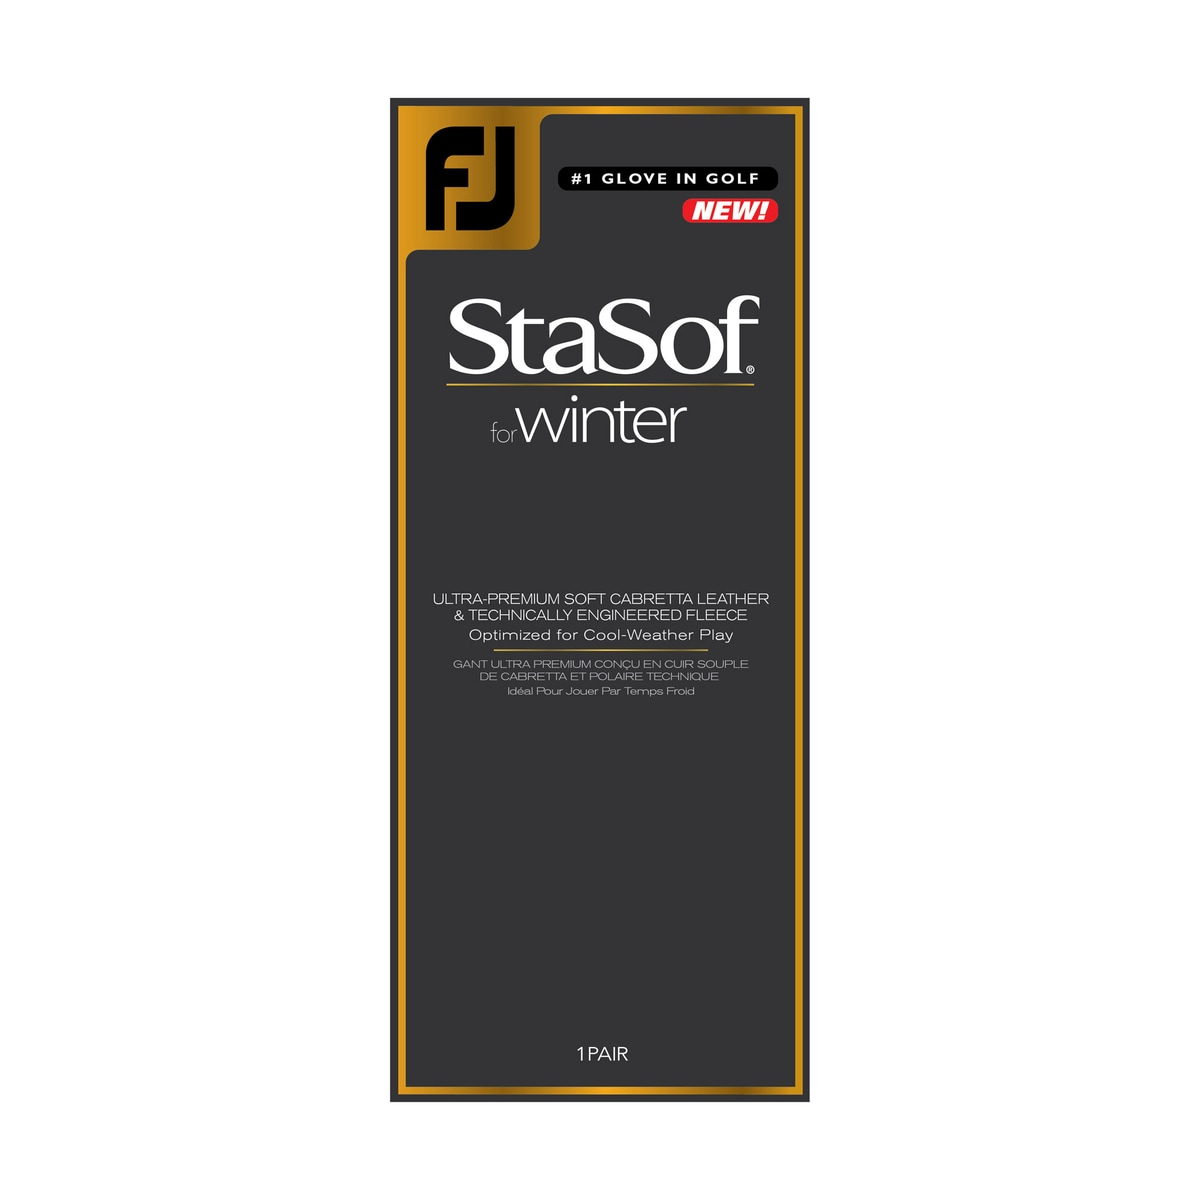 StaSof Winter Par